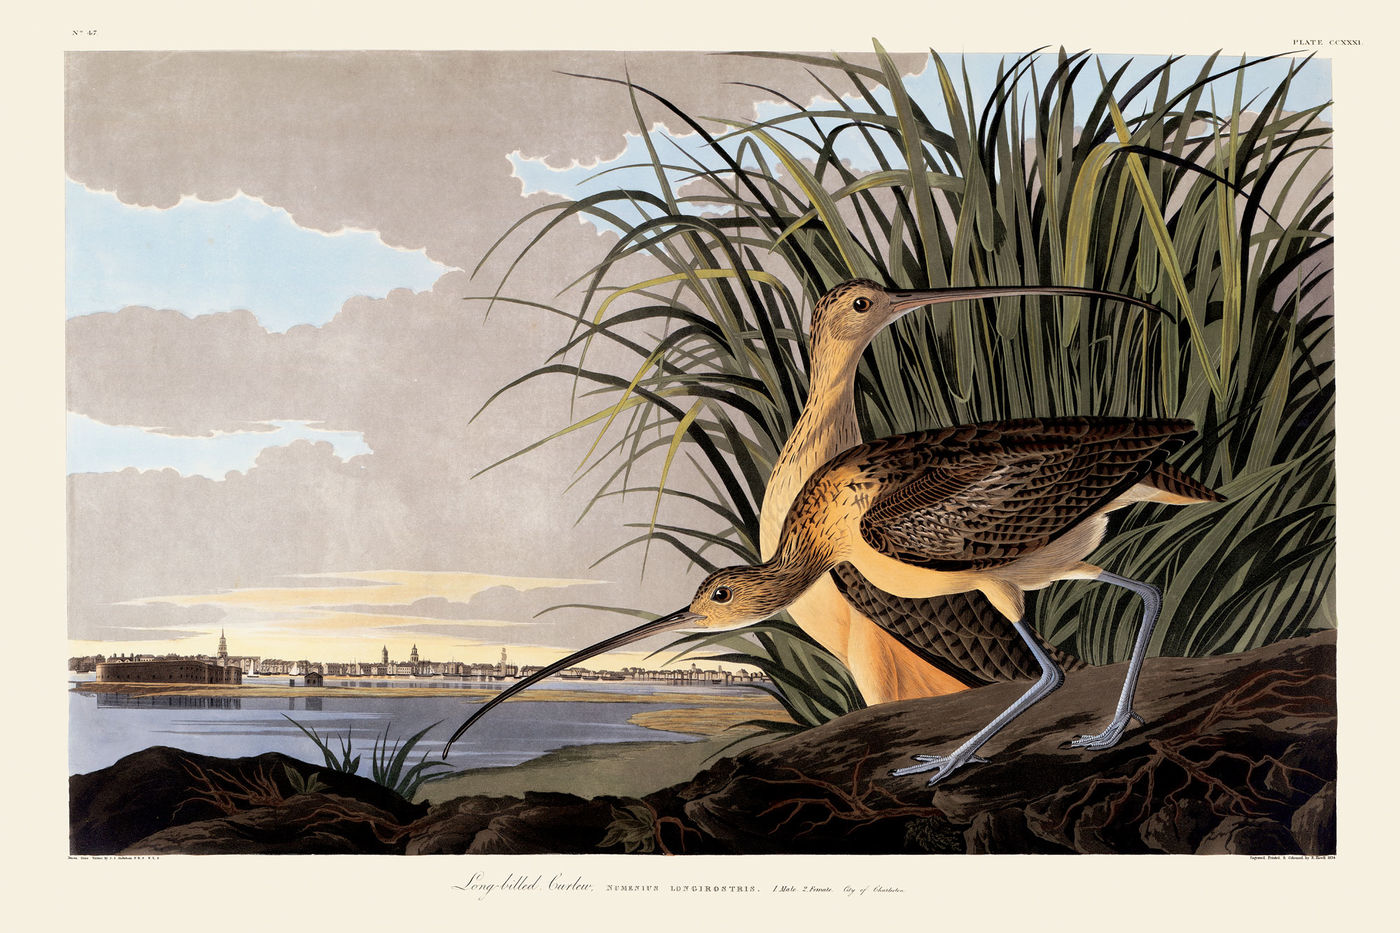 Two birds with very long, thin beaks poke around at the edge of the water. They're a light yellow-tan color on the underside, with dark brown patterned wings folded on their backs. They have lanky, blue legs. Green reeds are directly behind the birds, and a small city skyline is off in the far distance.